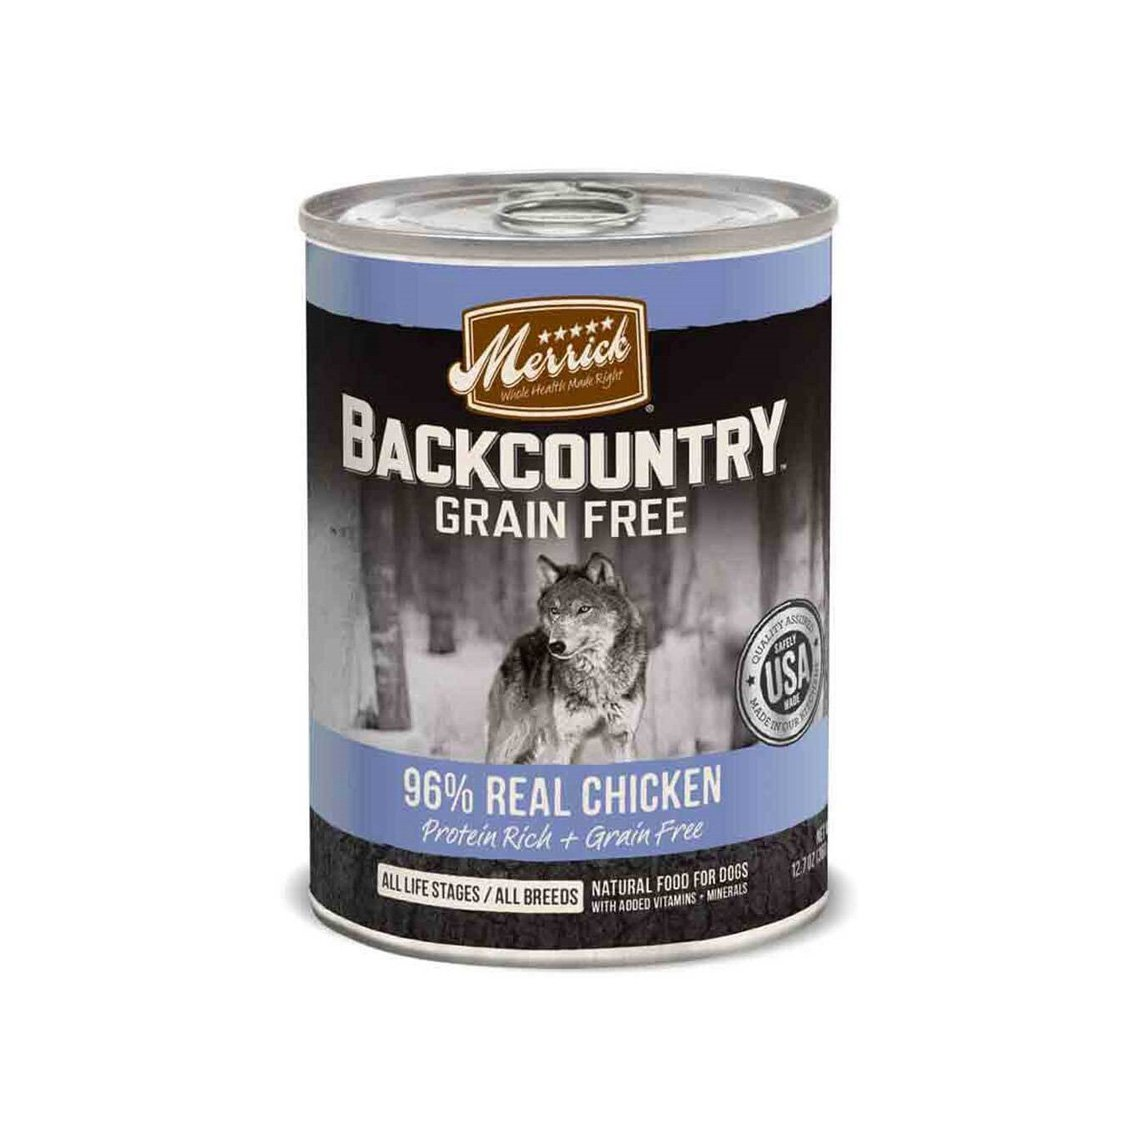 Merrick Backcountry Grain-Free 96% Real Chicken Recipe Canned Dog Food Image